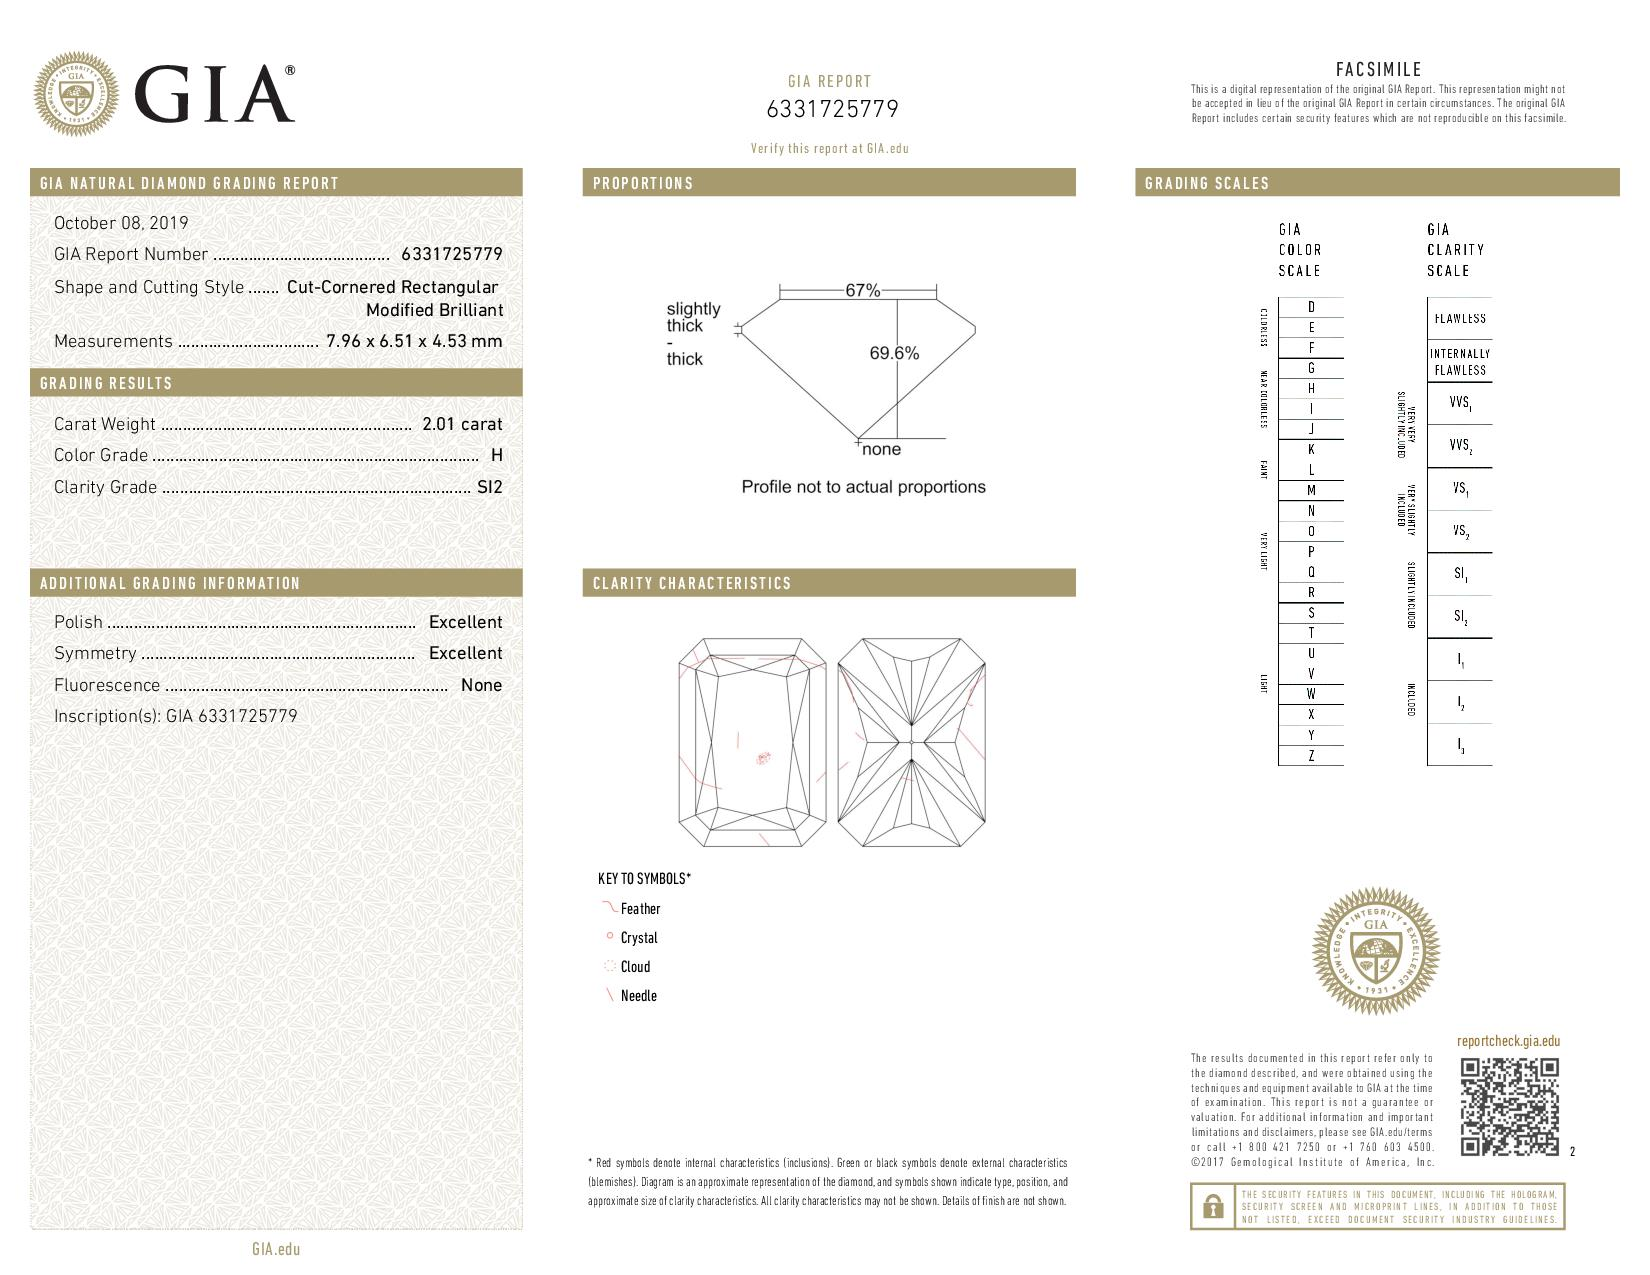 This is a 2.01 carat radiant shape, H color, SI2 clarity natural diamond accompanied by a GIA grading report.